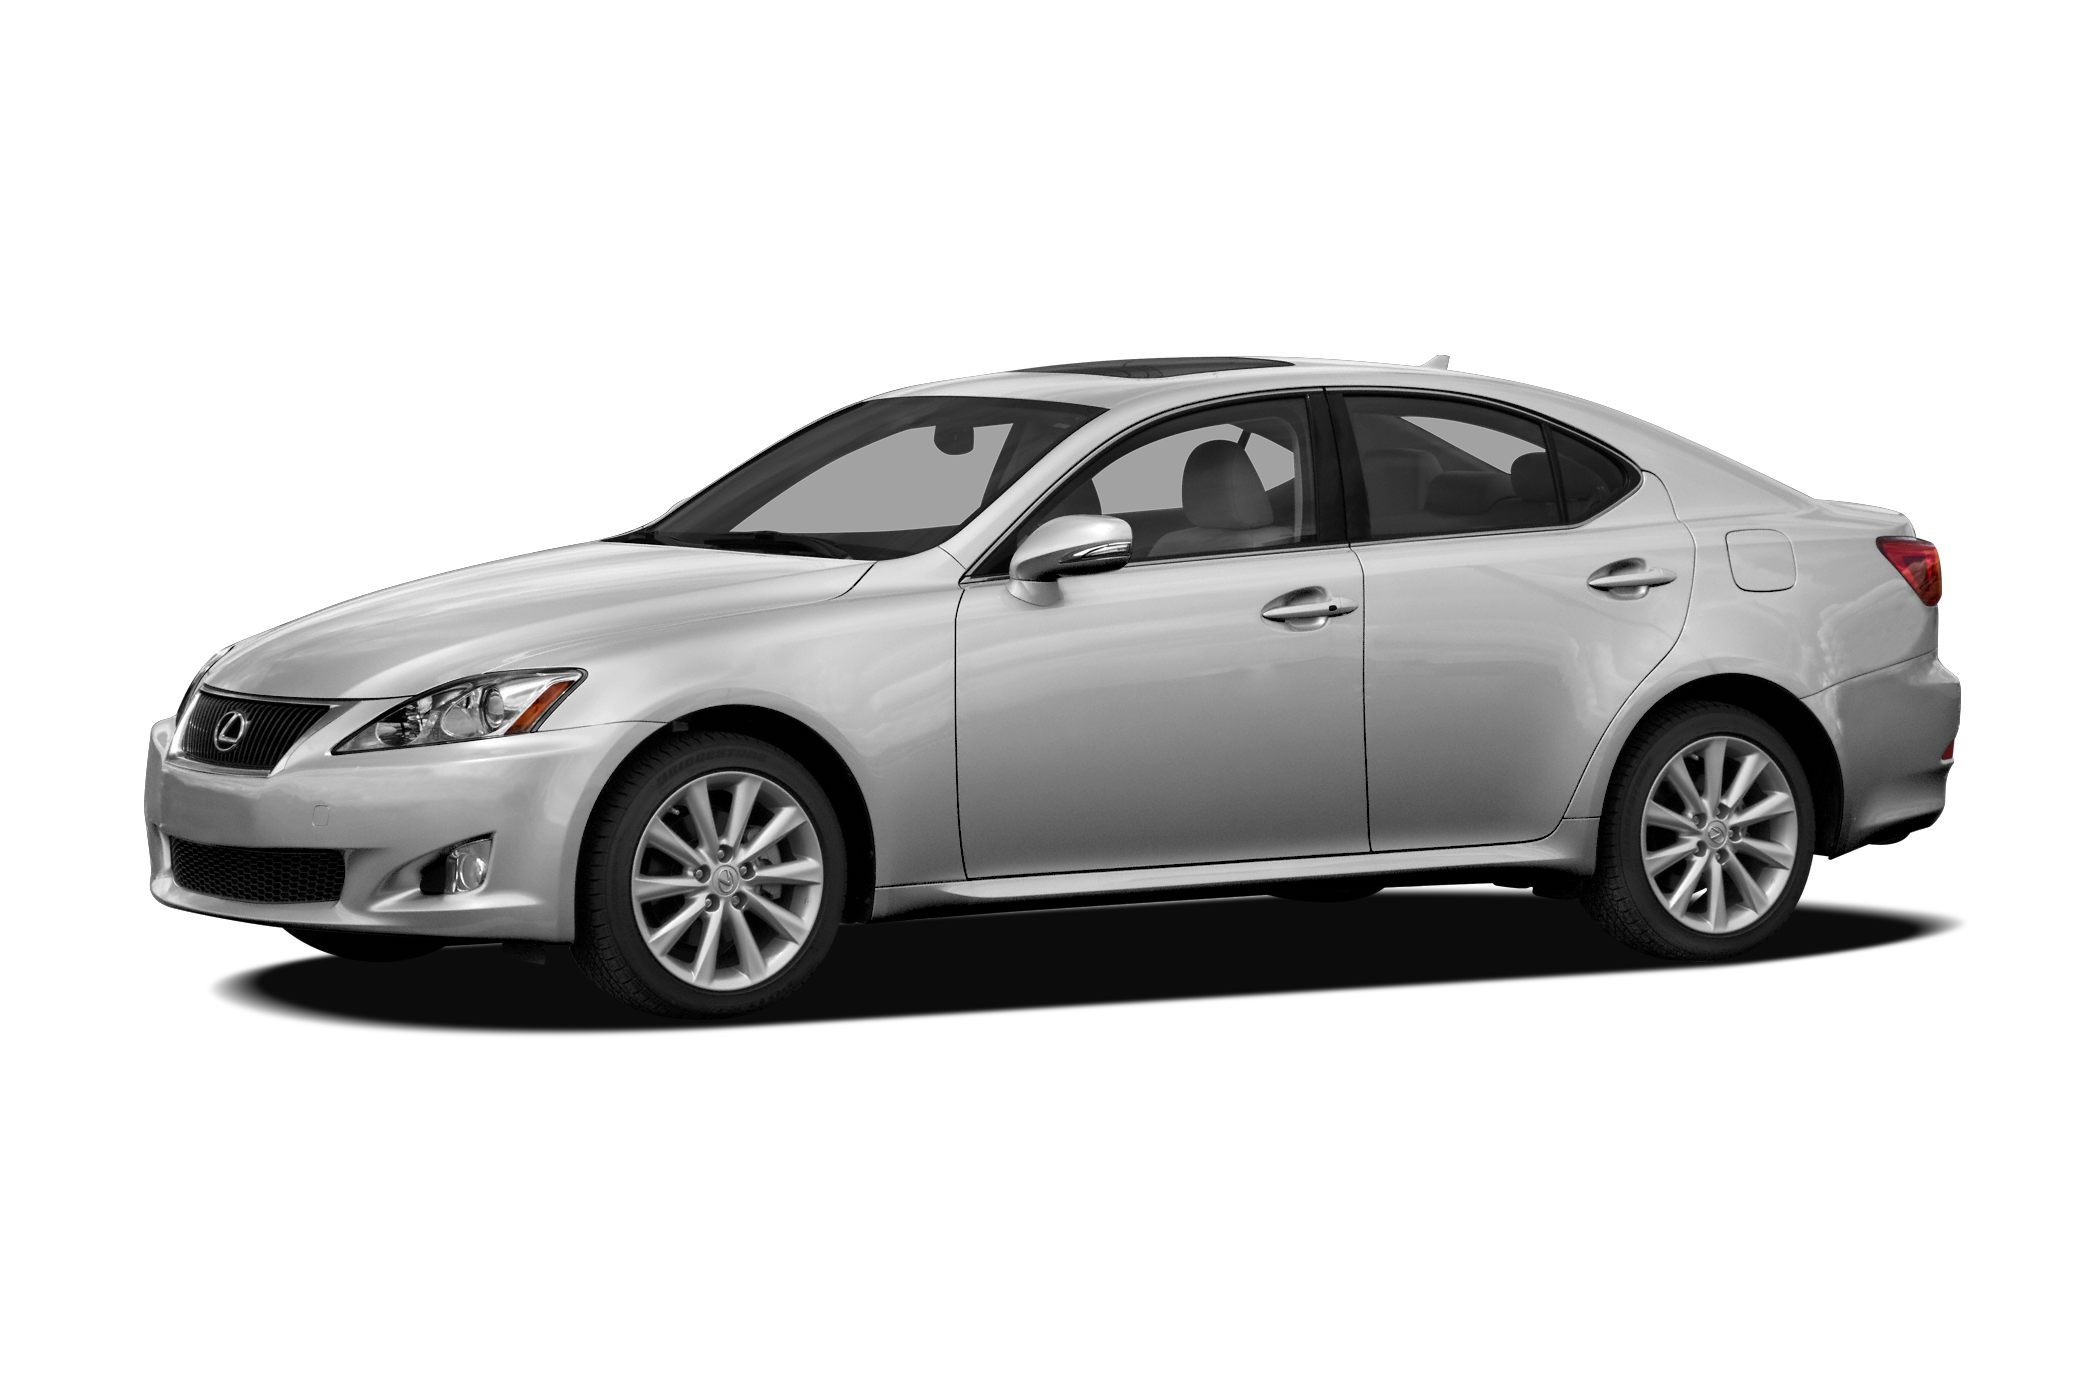 2010 Lexus IS 250 Base Visit Best Auto Group online at bronxbestautocom to see more pictures of t